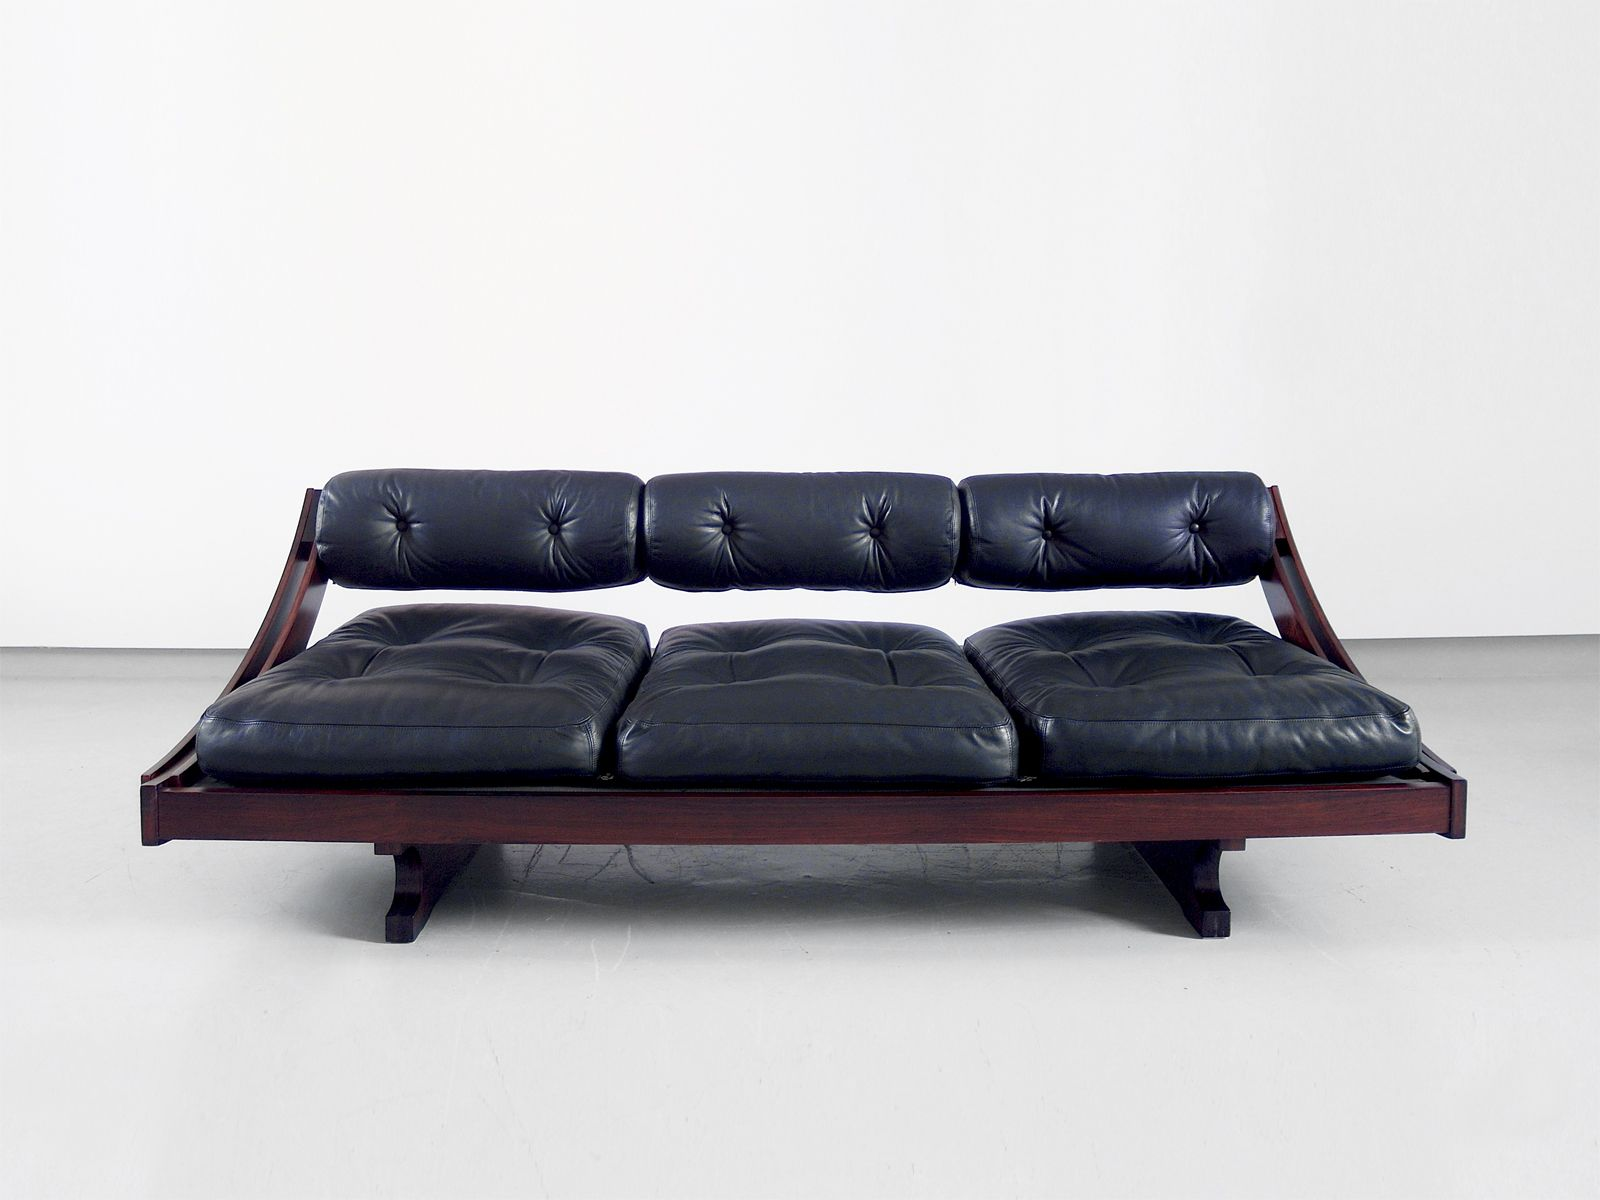 vintage modell gs 195 schlafsofa aus schwarzem leder von. Black Bedroom Furniture Sets. Home Design Ideas